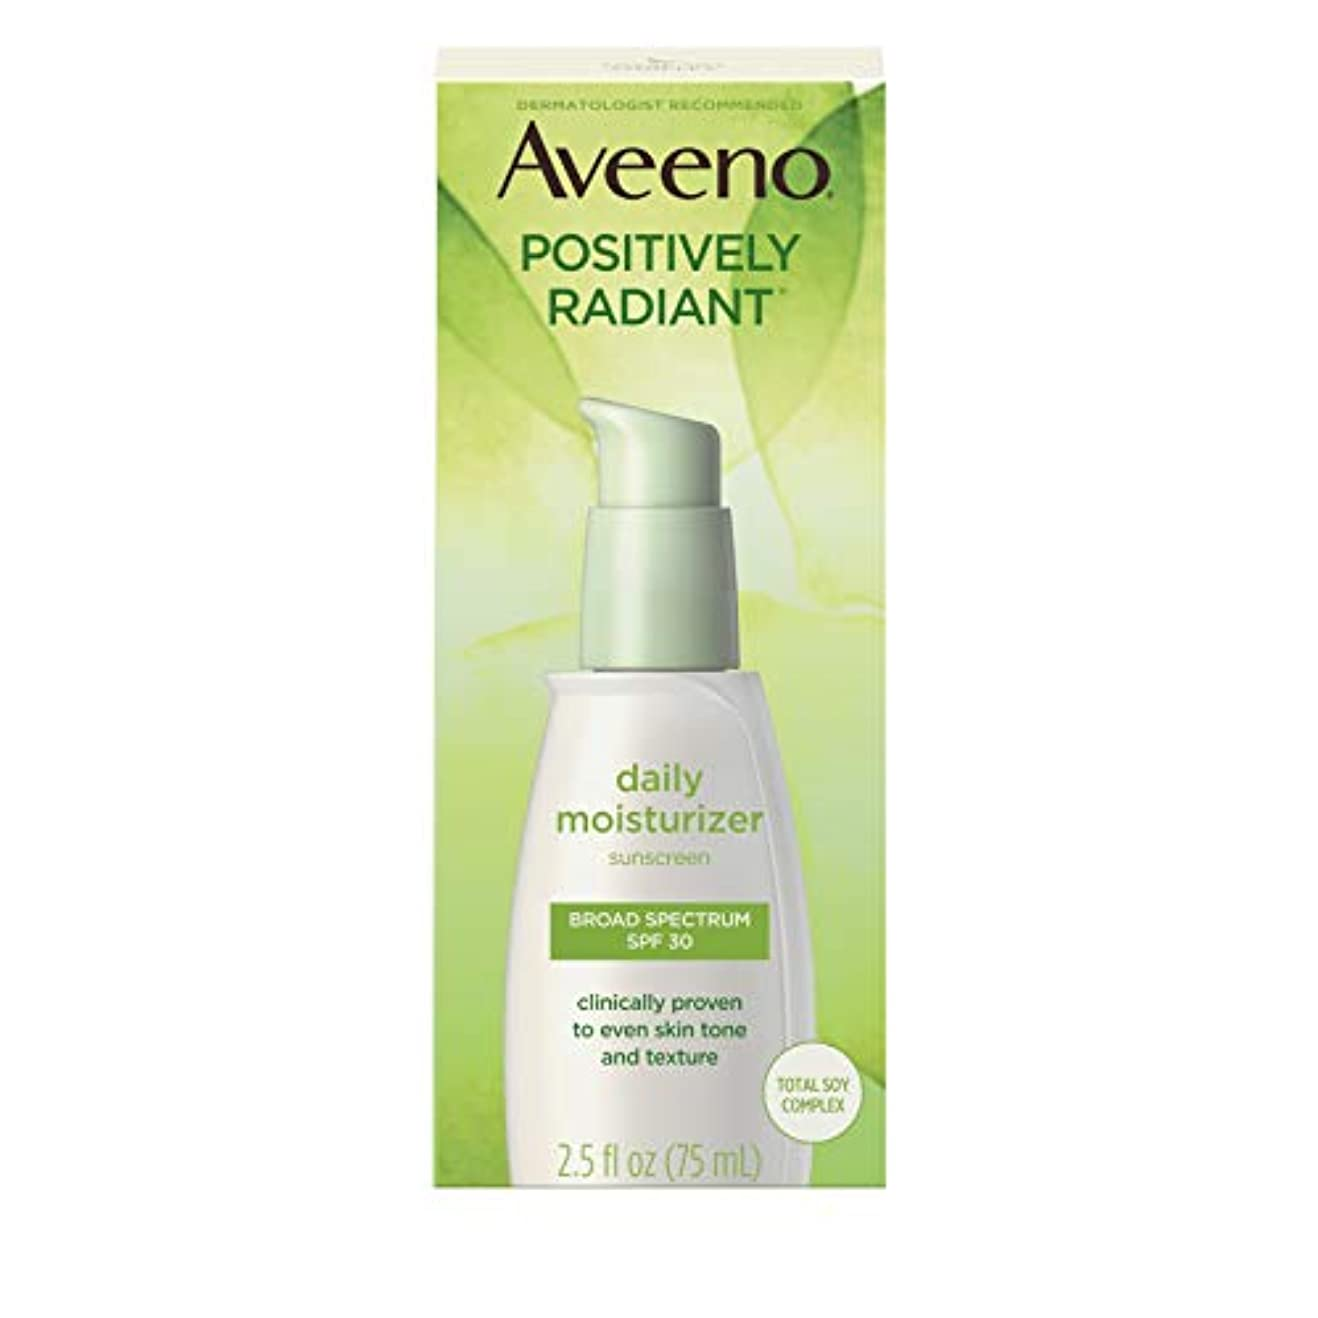 Aveeno Active Naturals Positively Radiant Daily Moisturizer SPF-30 UVA/UVB Sunscreen 73 ml